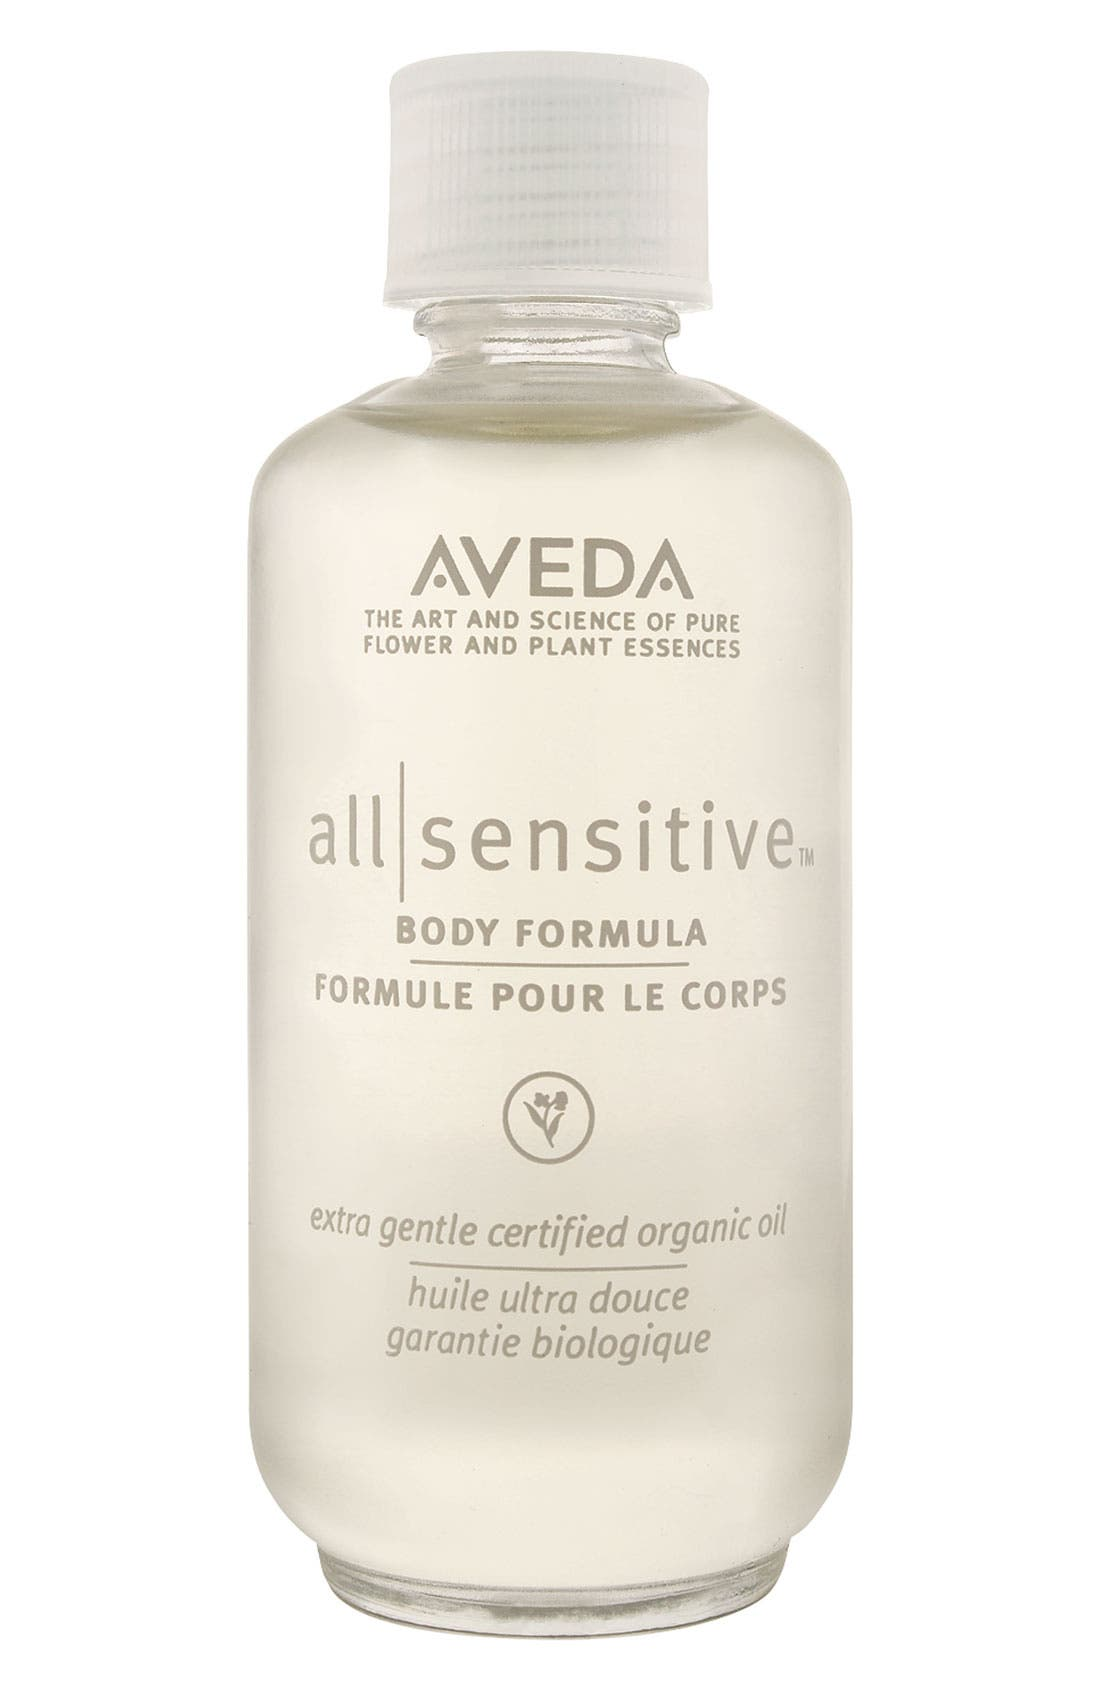 Aveda 'all-sensitive™' Body Formula